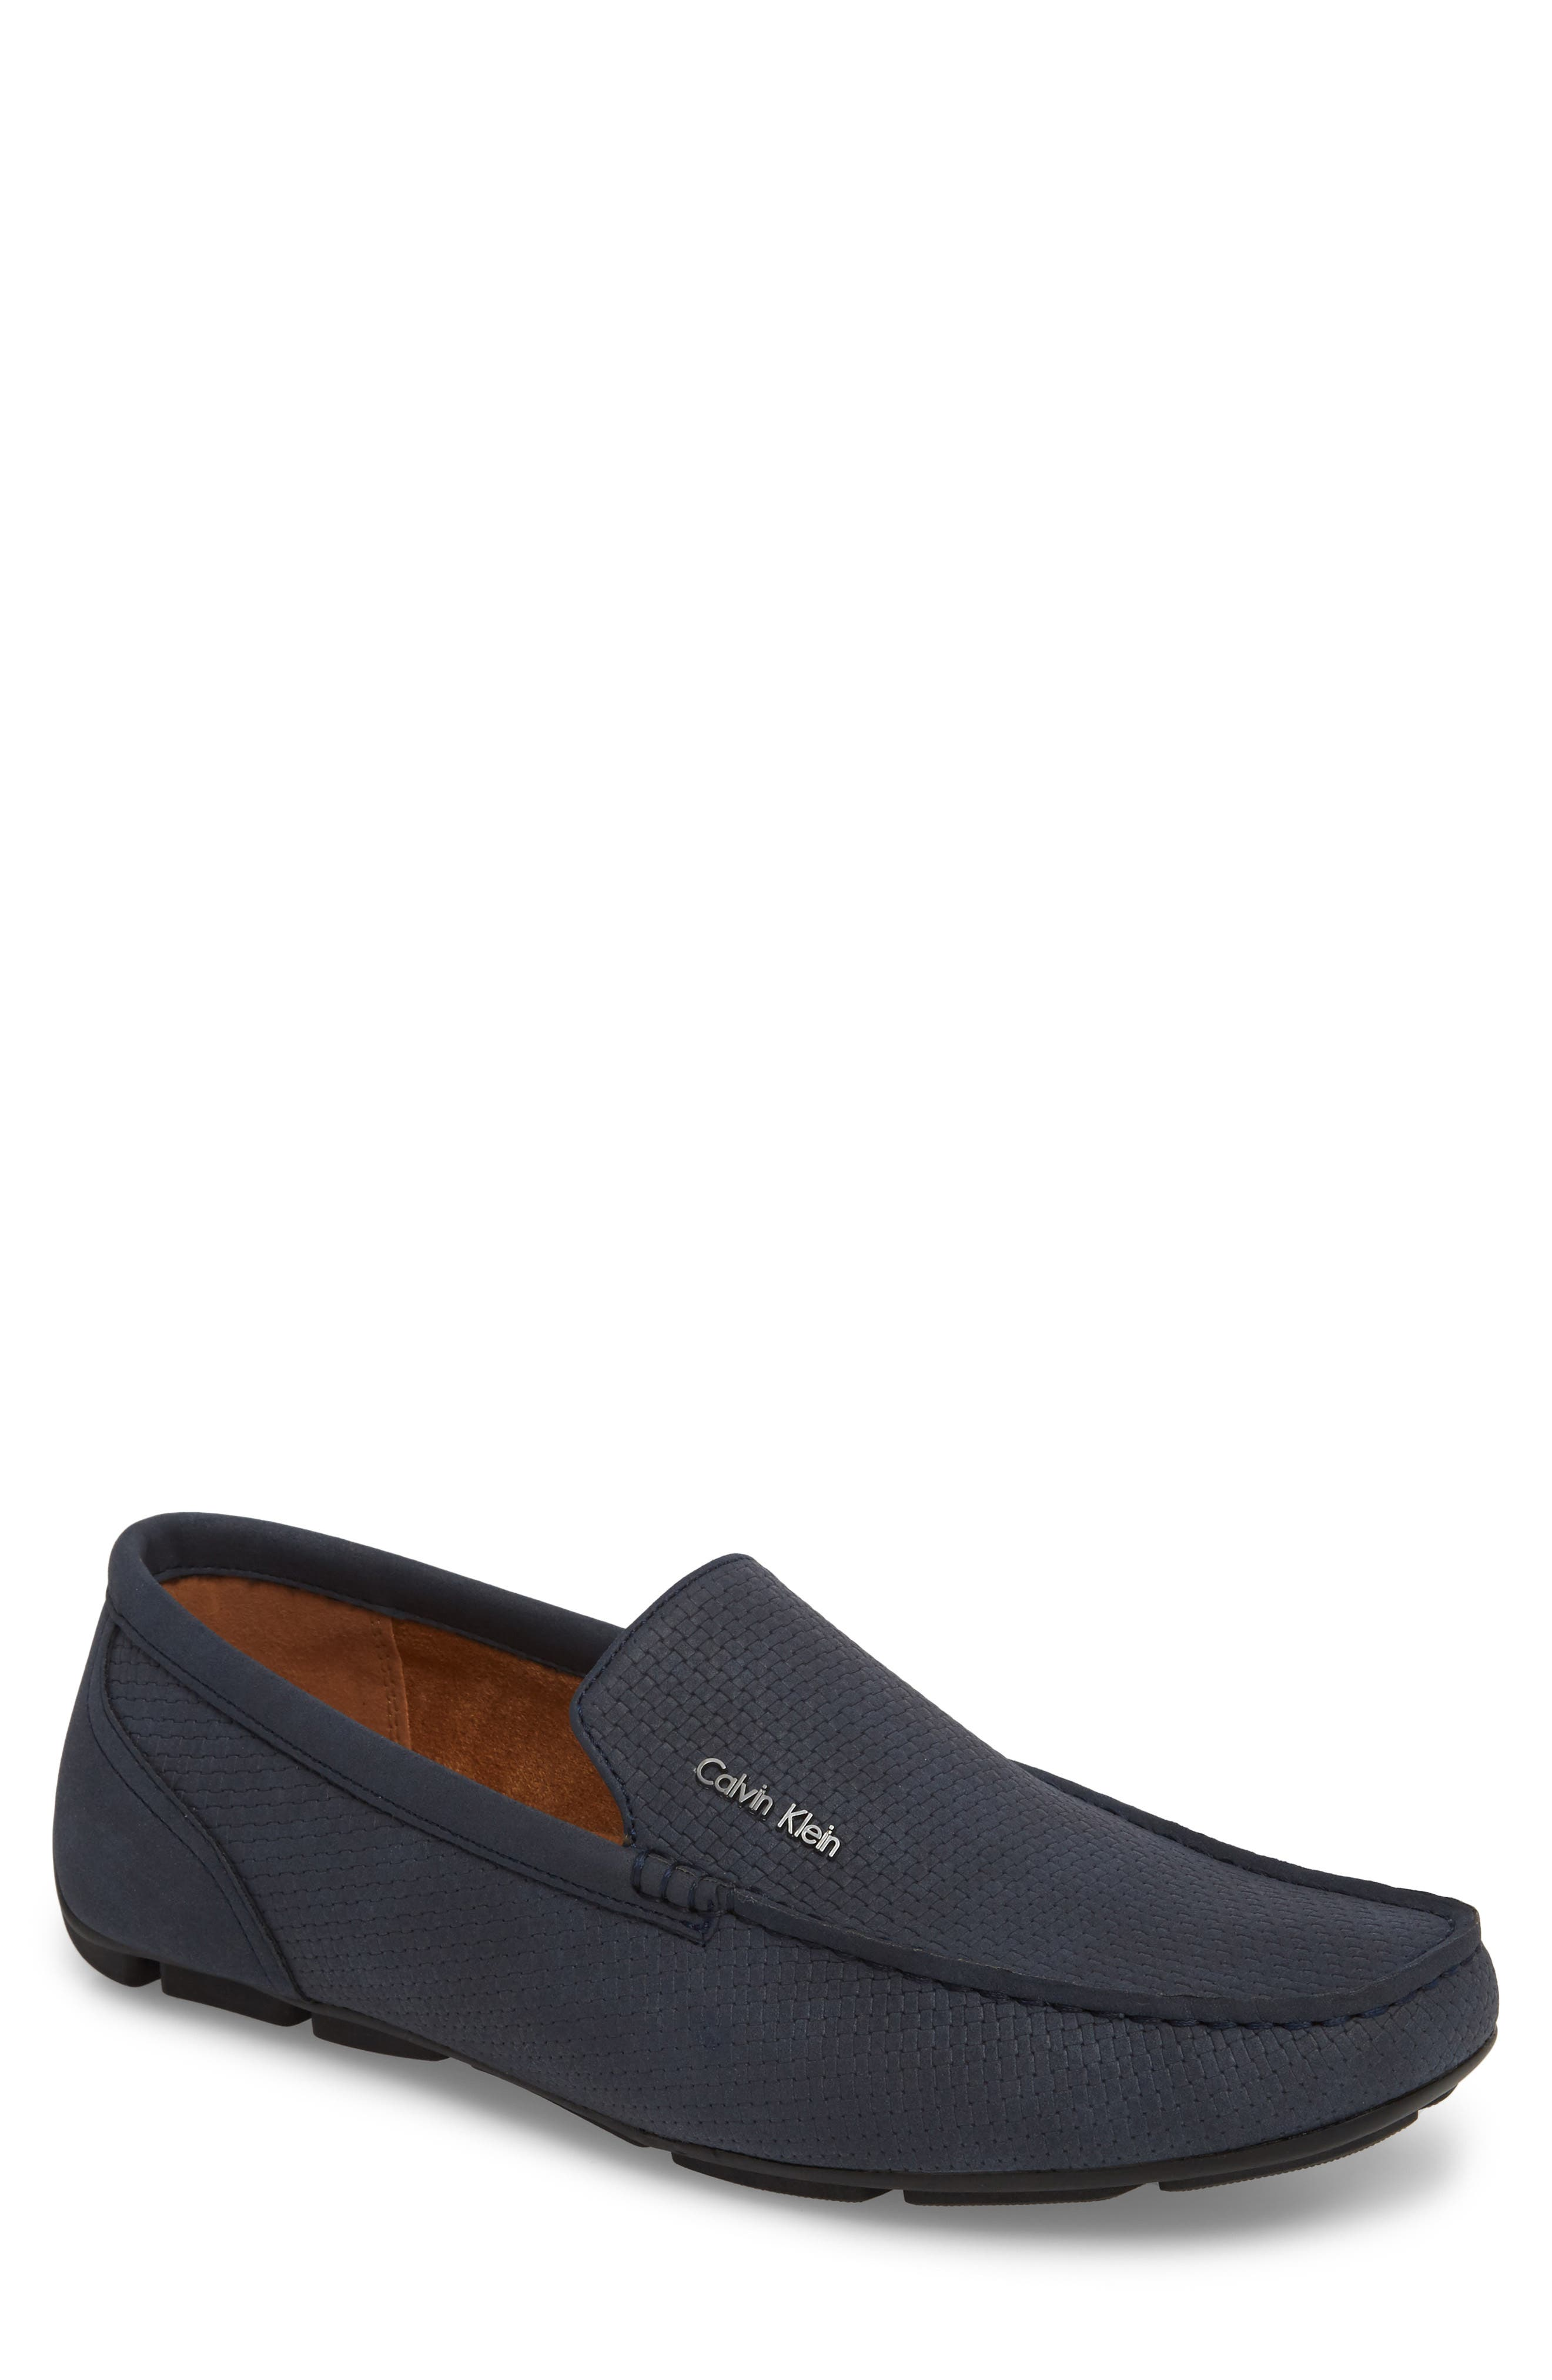 Calvin Klein Manny Textured Driving Loafer, Blue